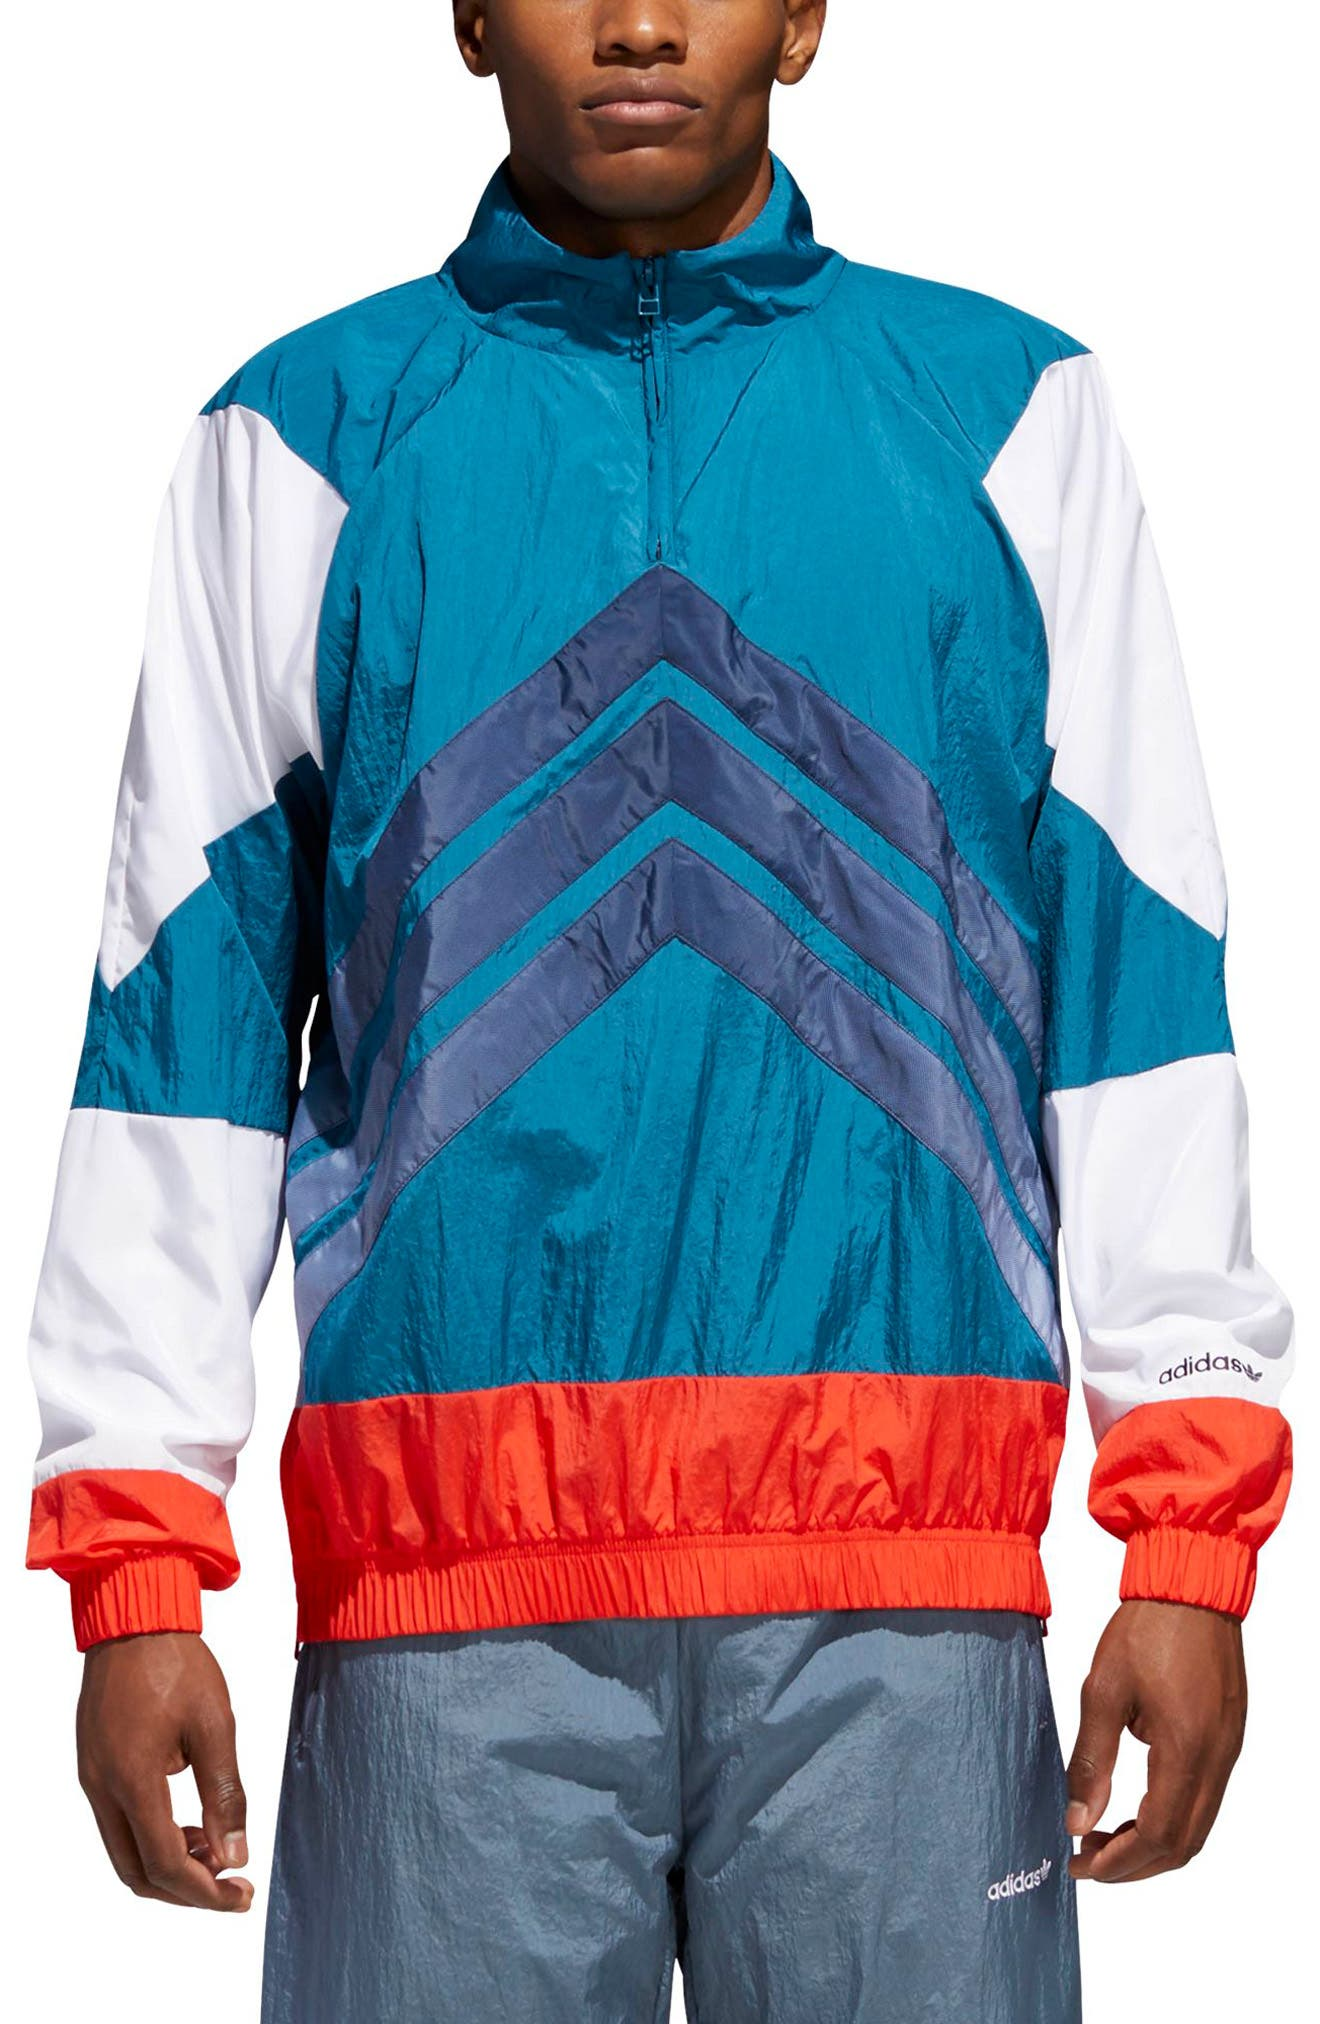 V Stripes Windbreaker,                             Main thumbnail 1, color,                             Hii Res Red